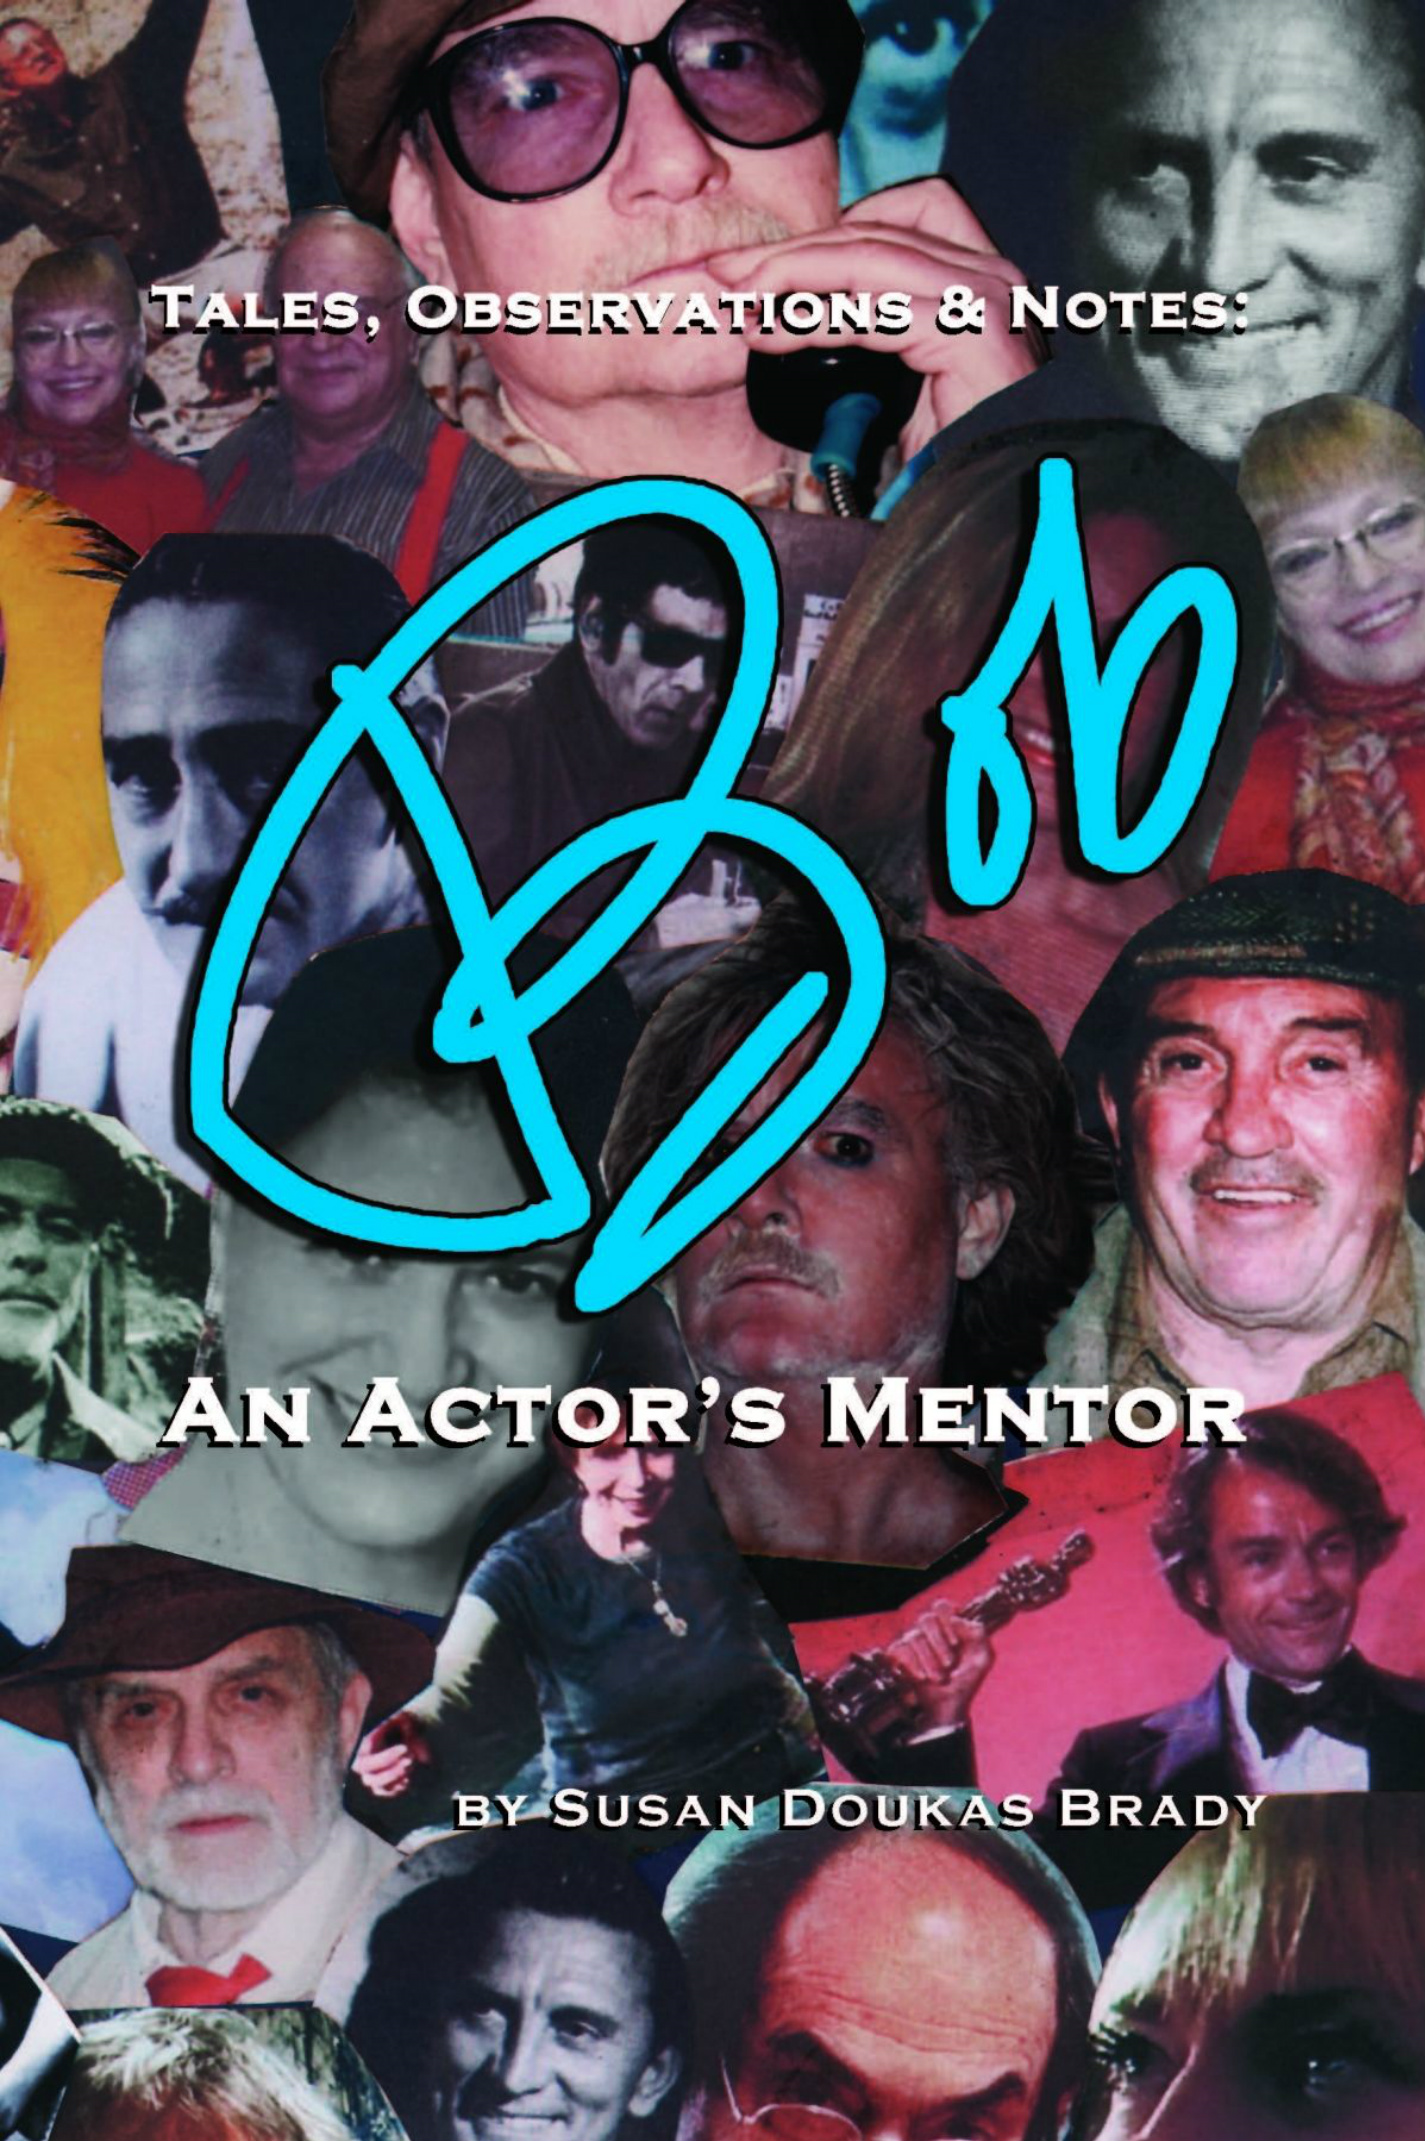 Tales, Observations & Notes:  BOB  An Actor's Mentor